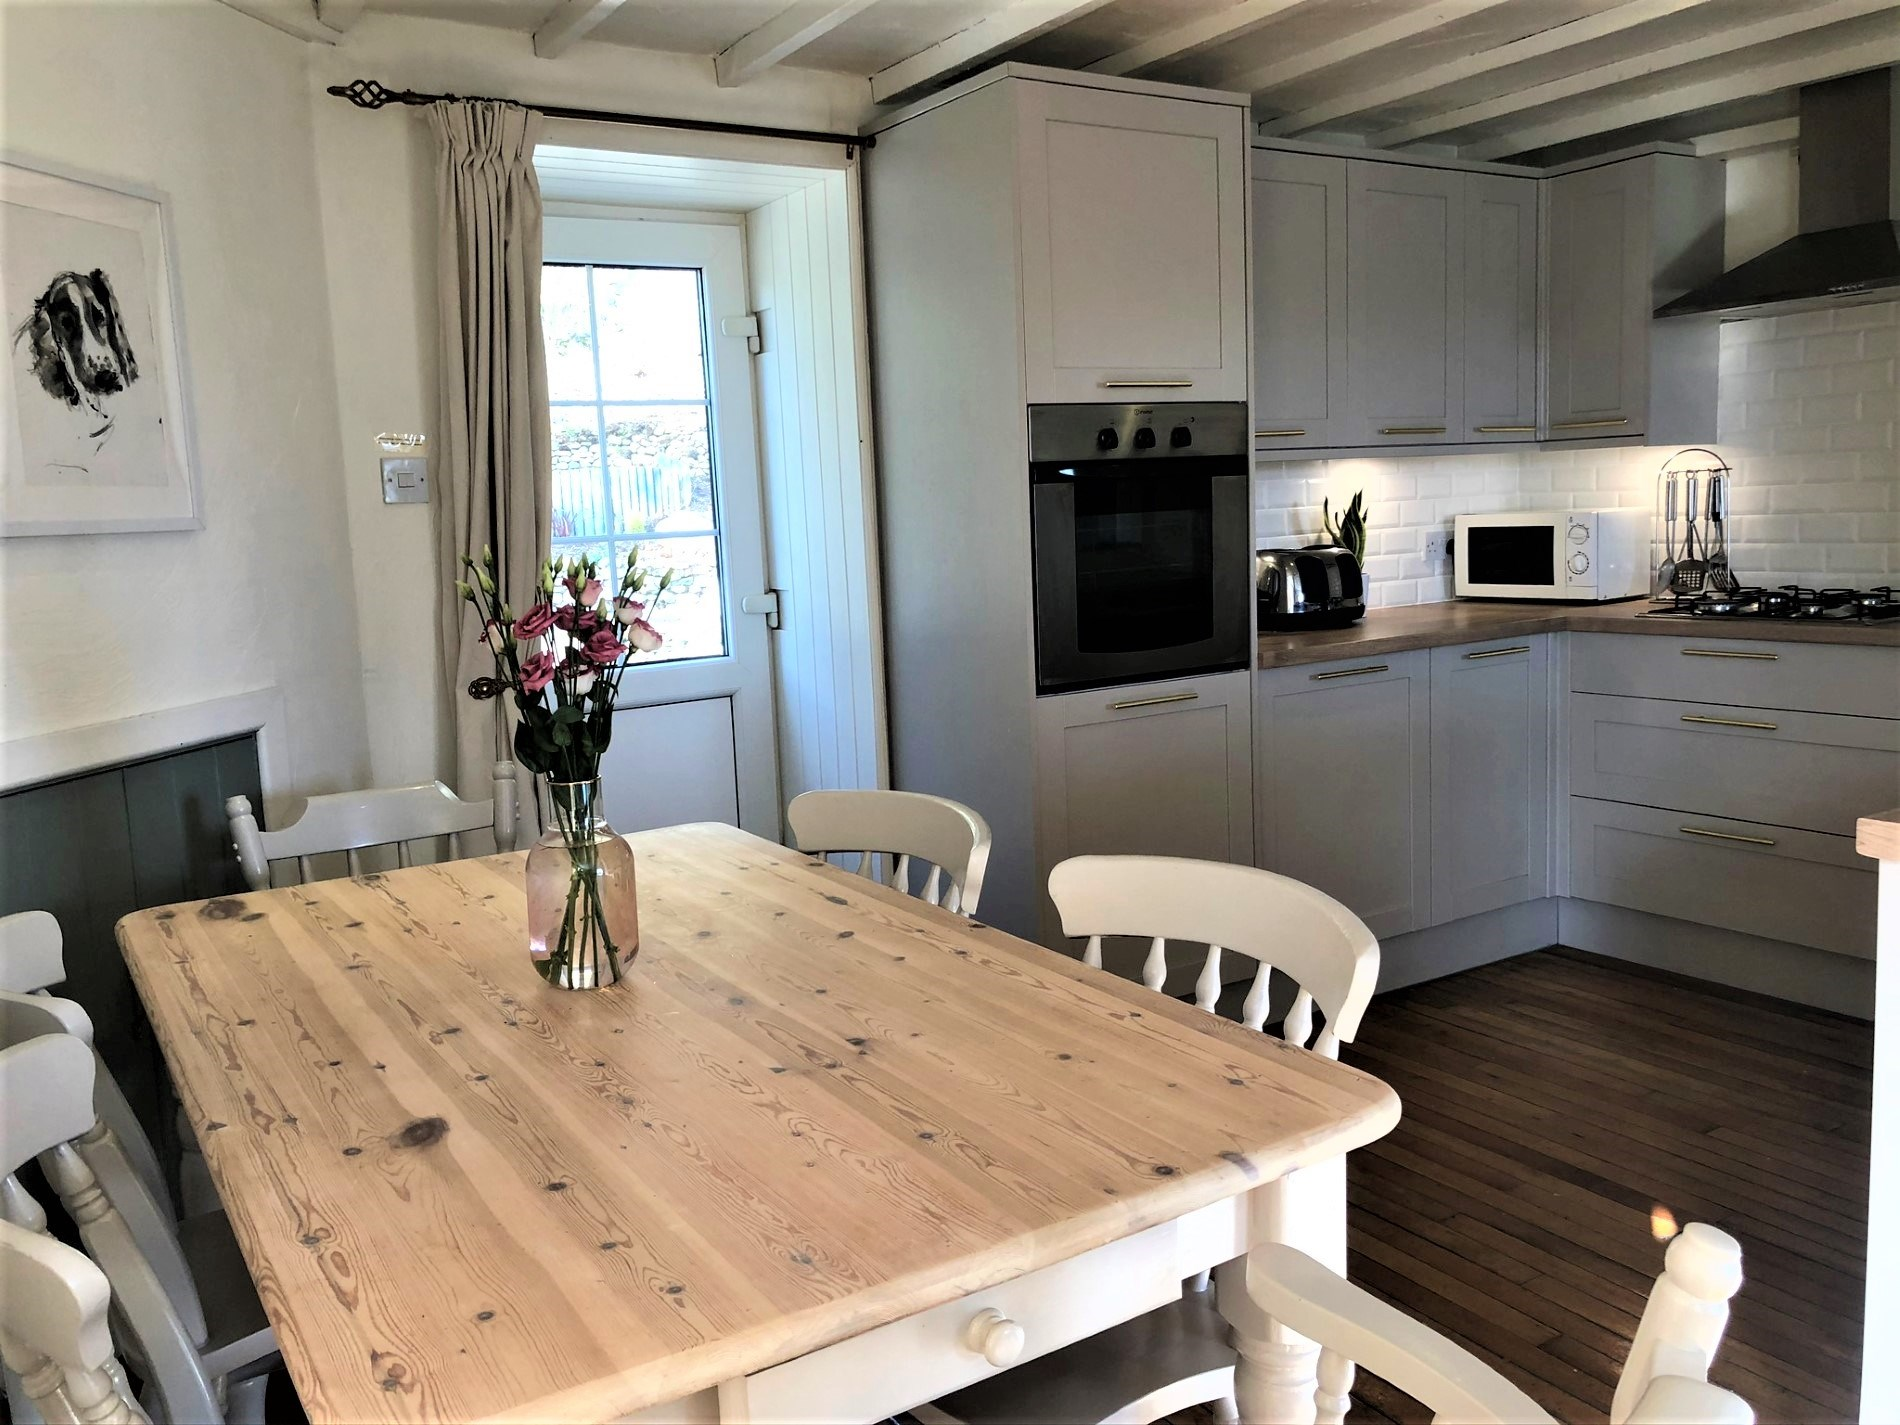 3 Bedroom Cottage in North Wales, Snowdonia and North Wales